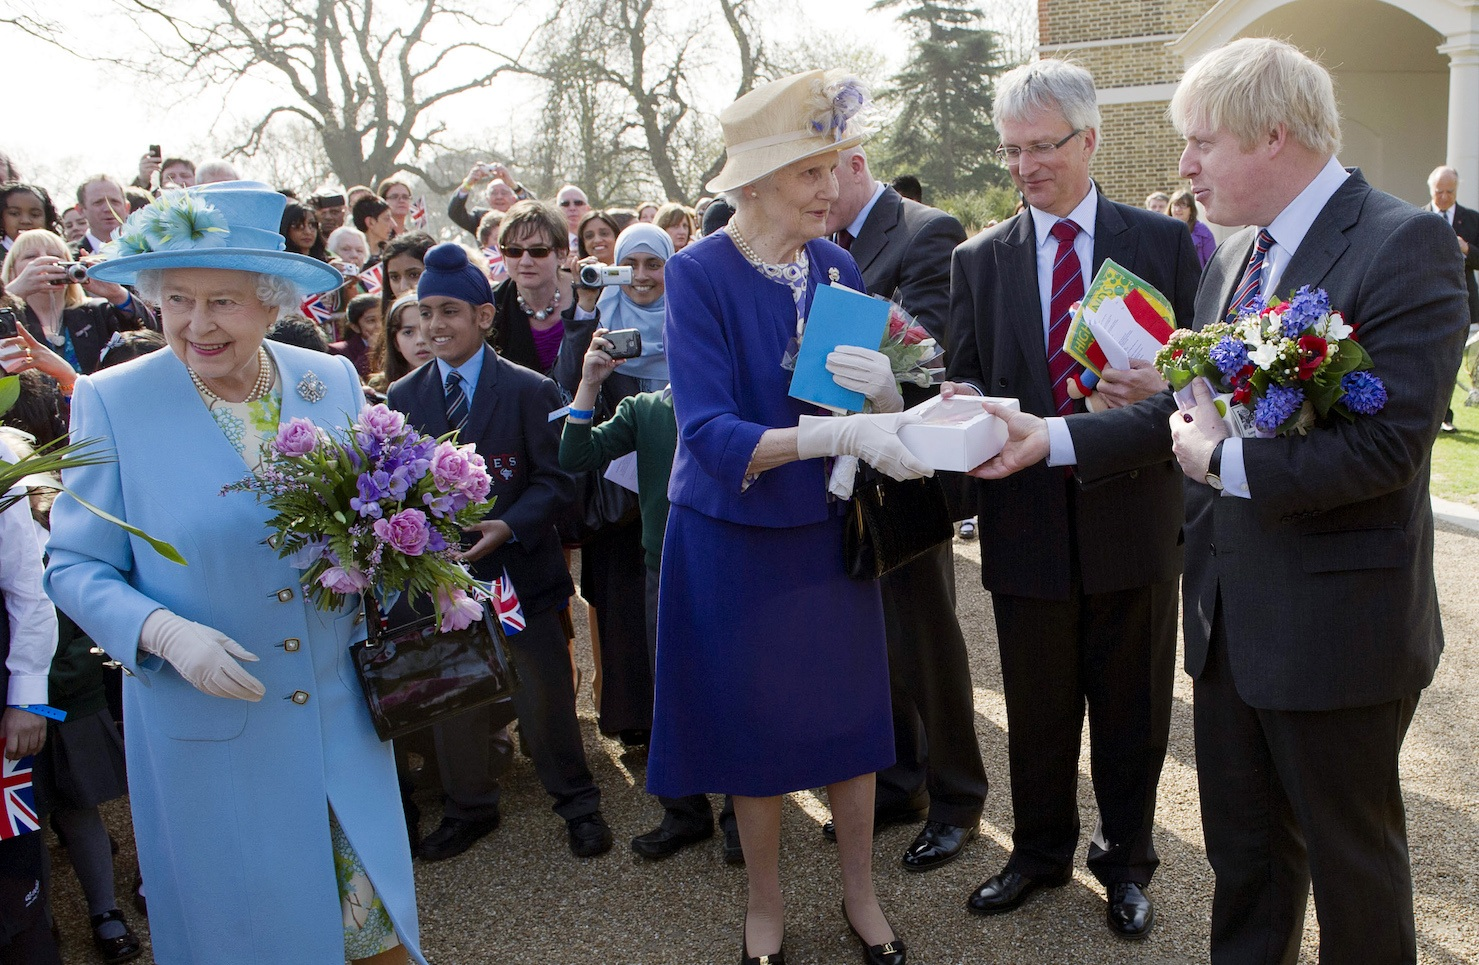 London Mayor Boris Johnson (R) and a lady-in-waiting (C) help Britain's Queen Elizabeth II (L) with her many gifts